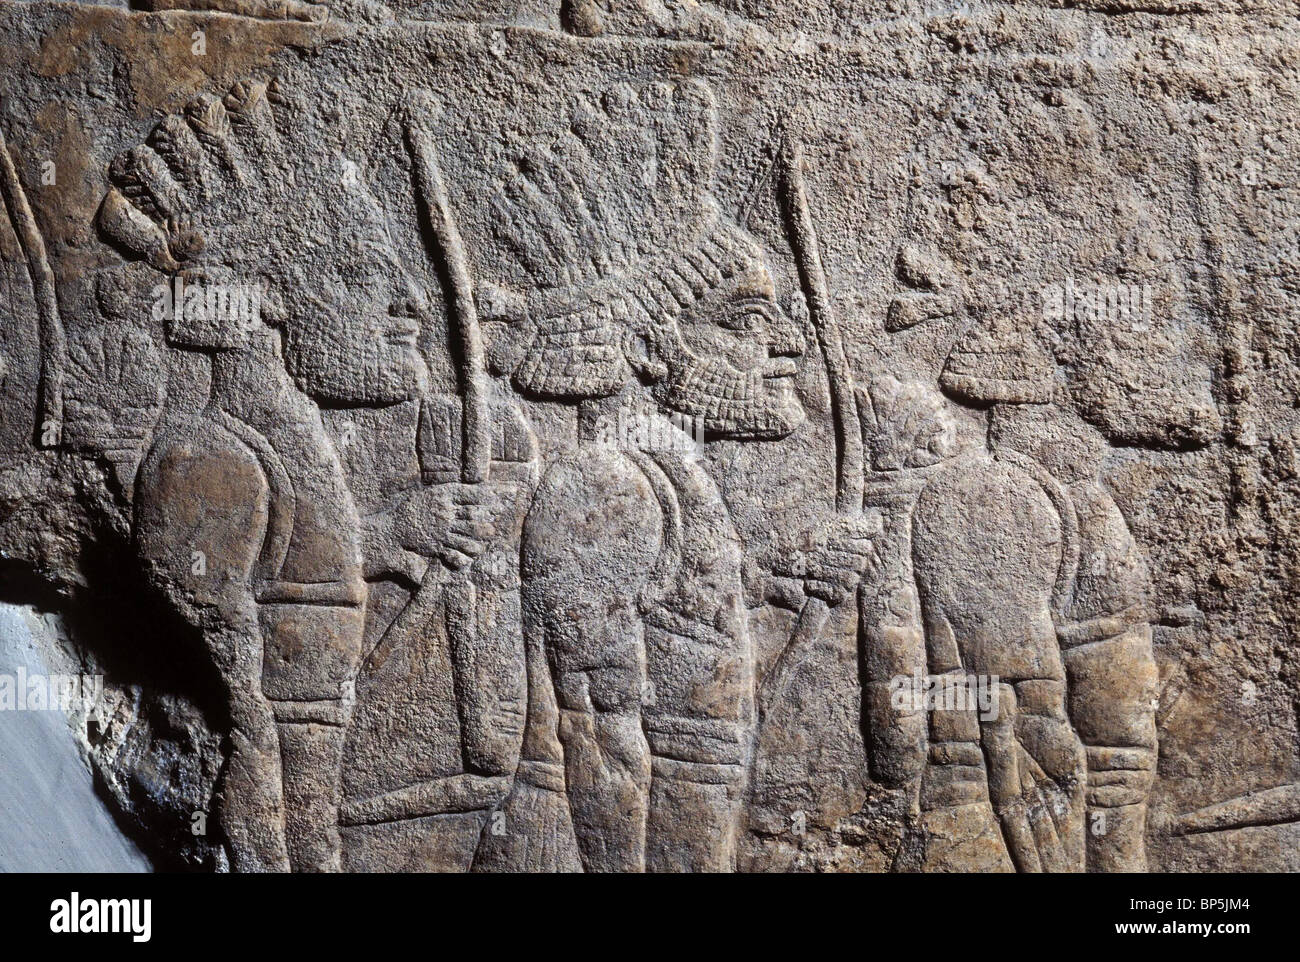 4059. ASSYRIAN ARMY MERCENARY TROOPS - Stock Image